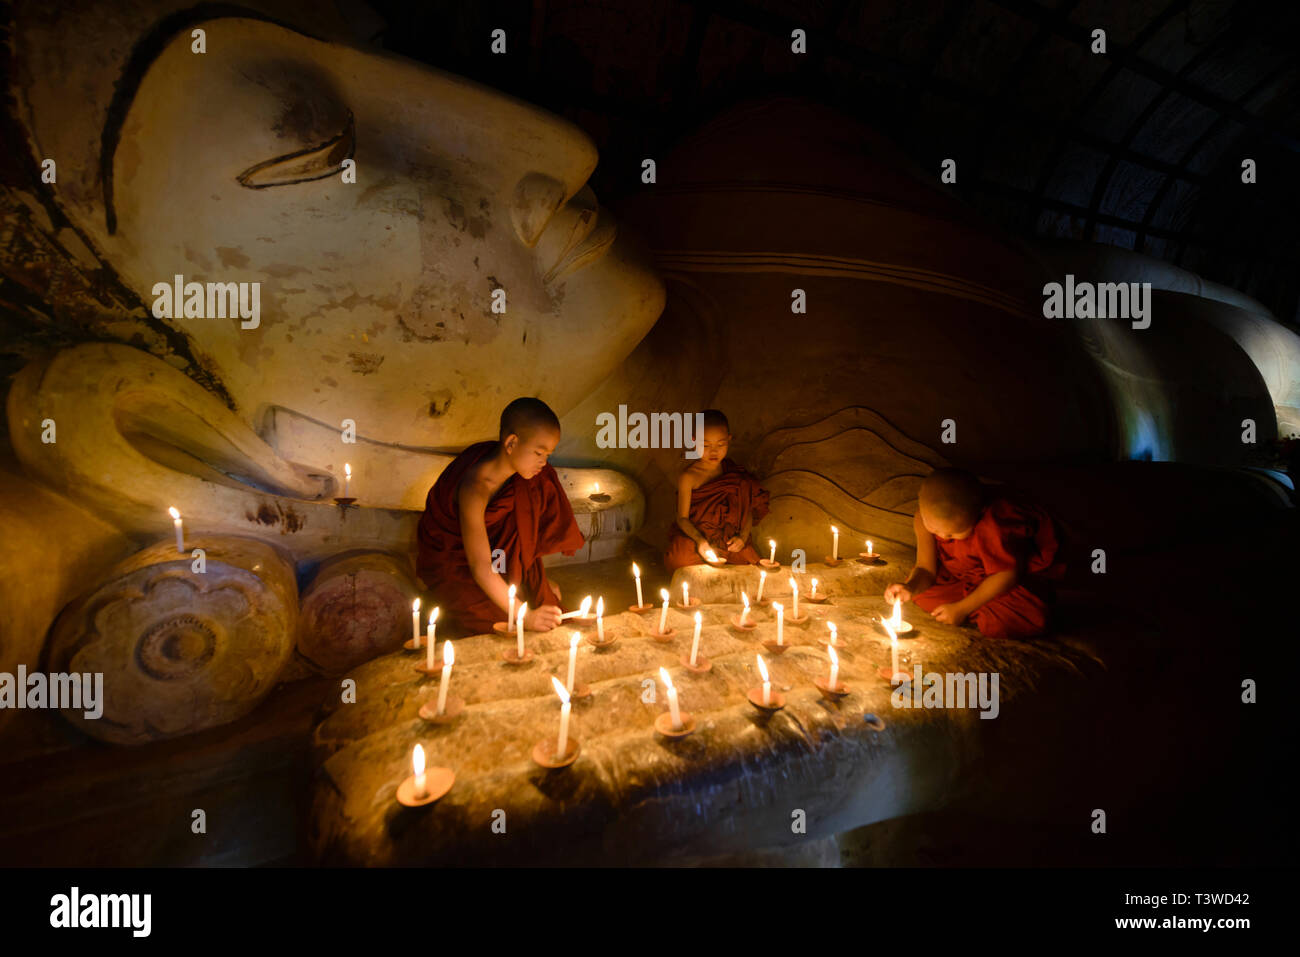 Asian monks lighting candles in temple - Stock Image